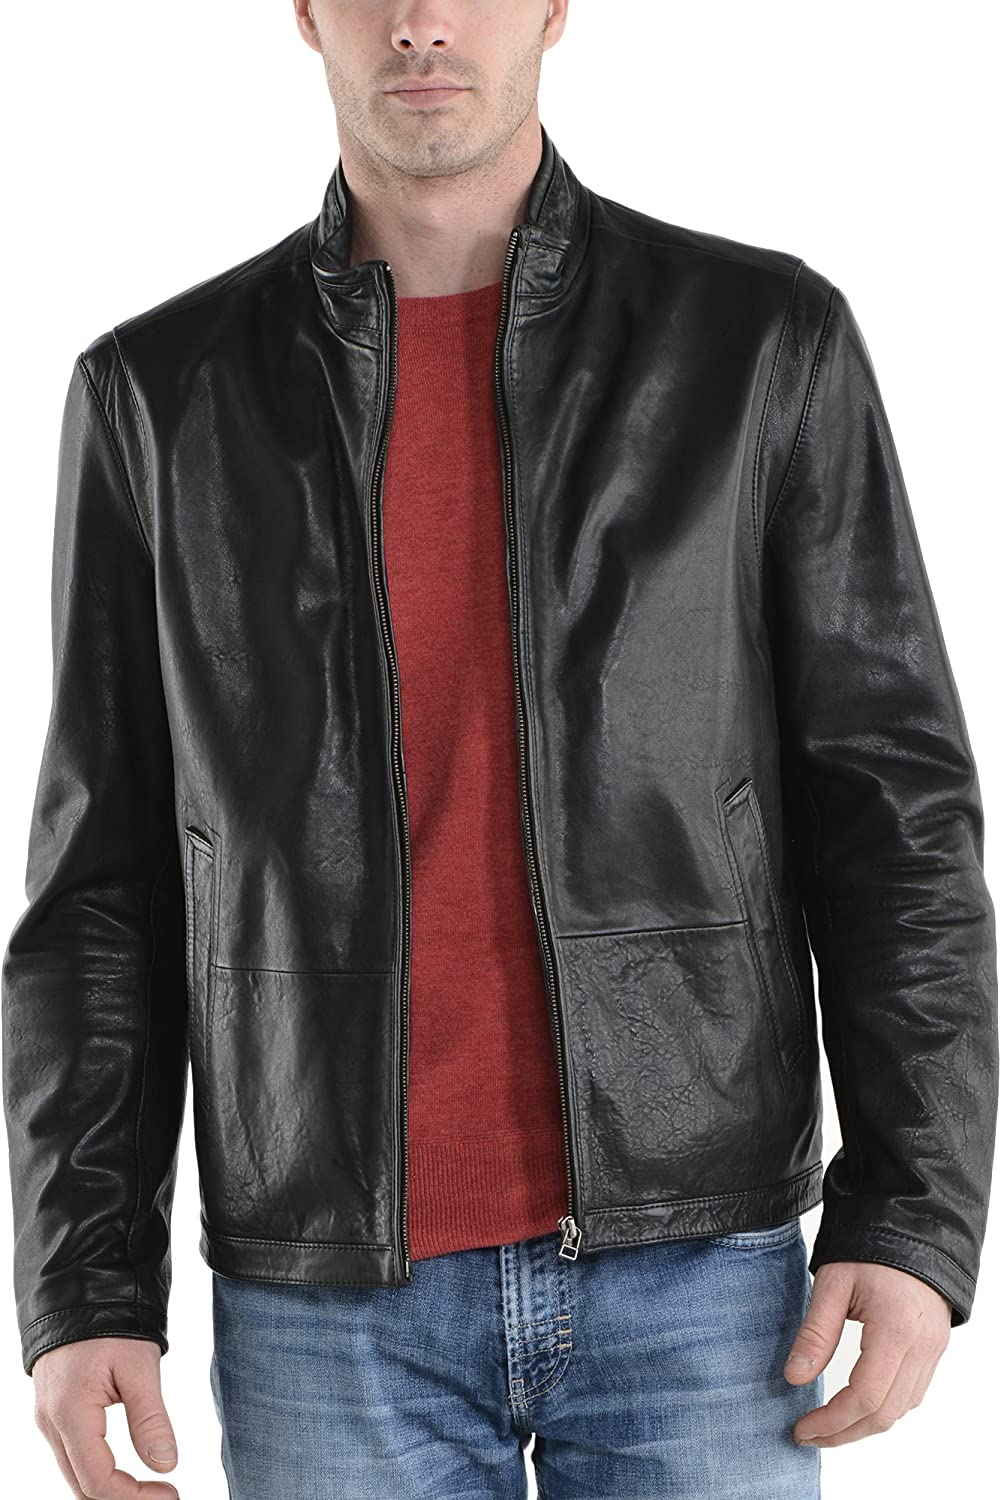 Kingdom Leather New Men Motorcycle Lambskin Leather Jacket Coat Size XS S M L XL X059